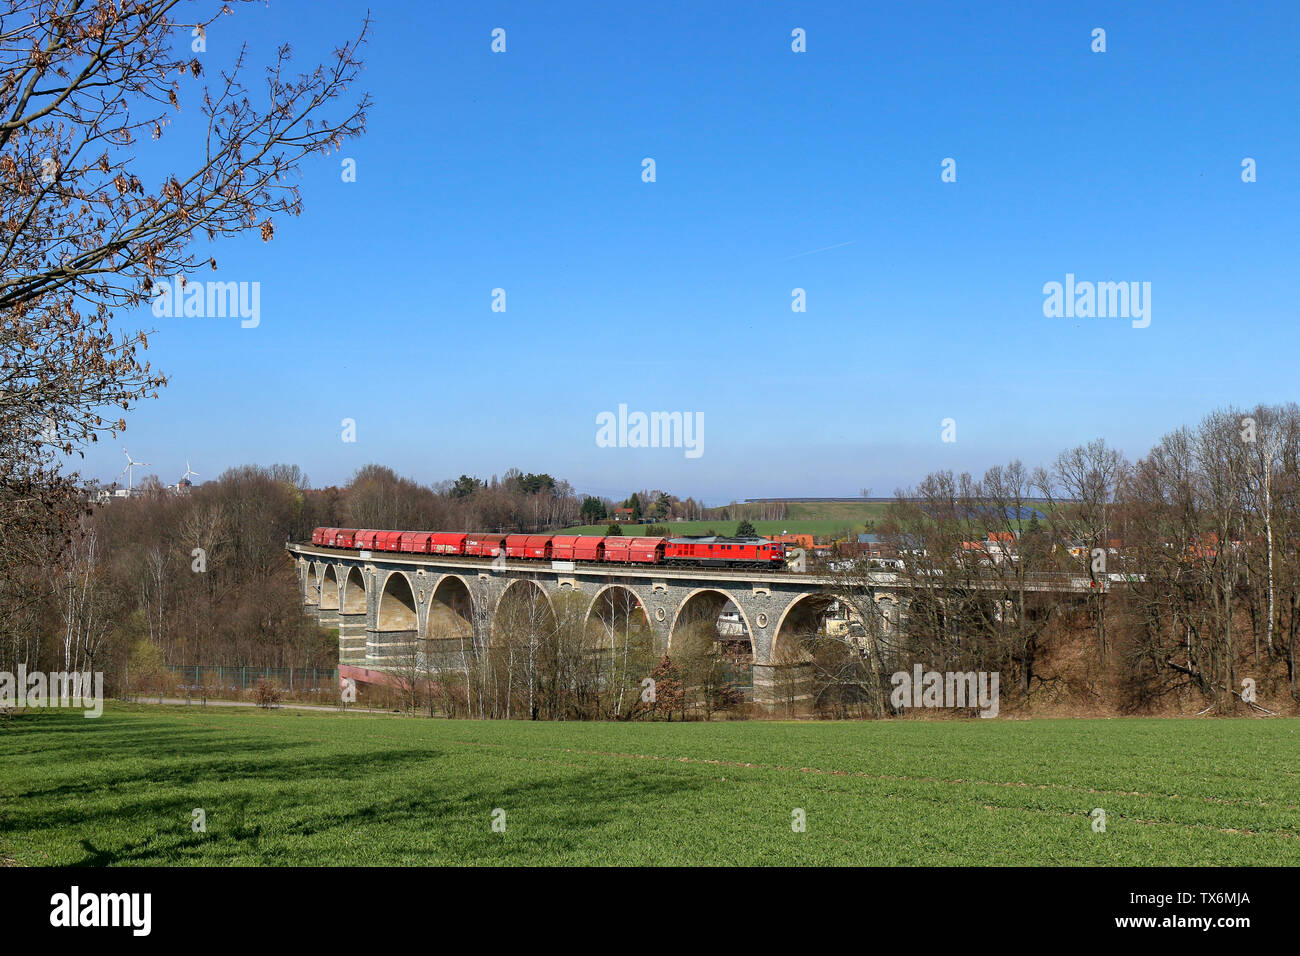 freight train in eastern germany - Stock Image